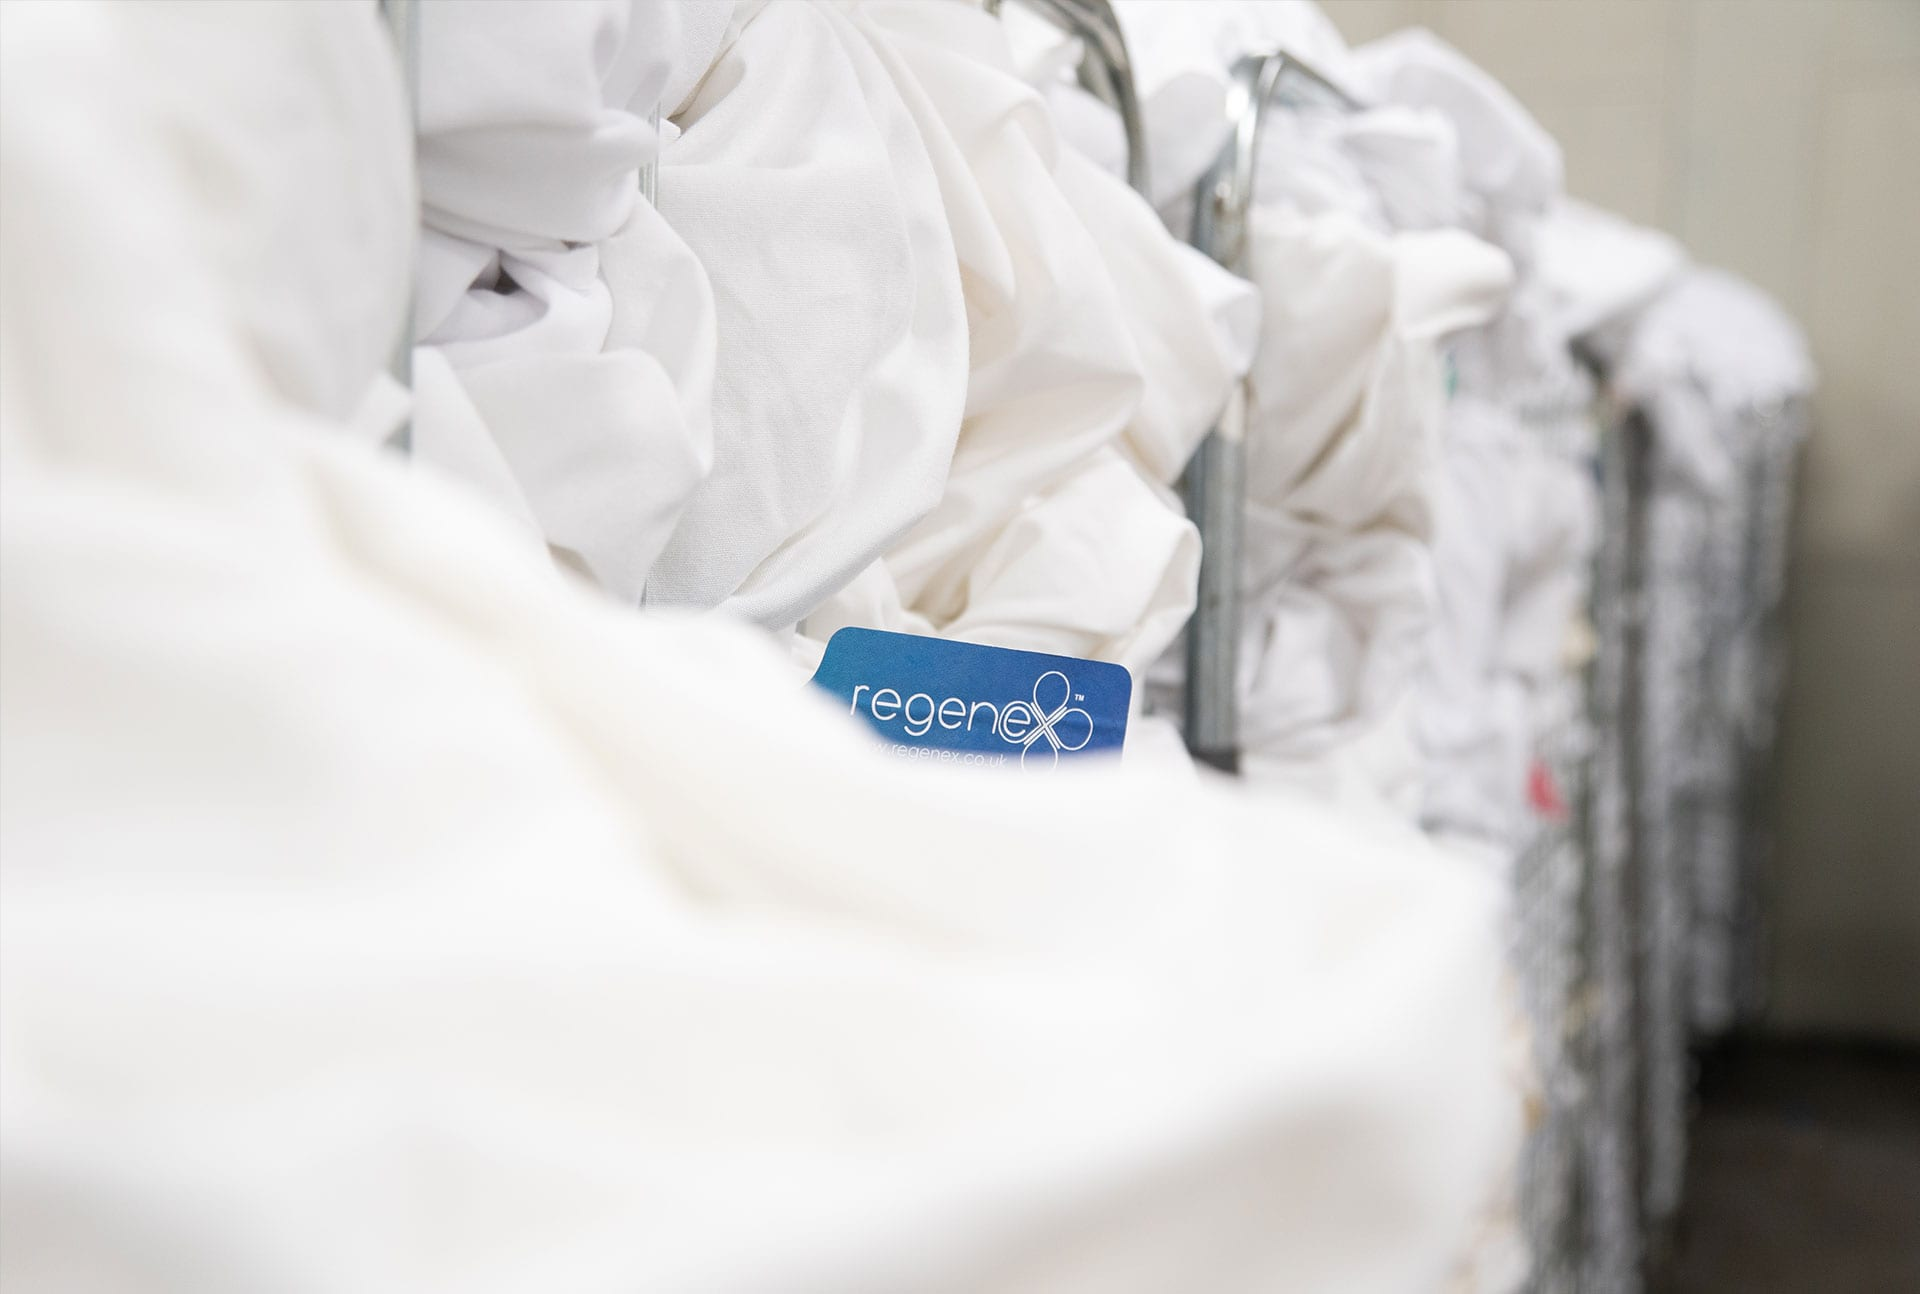 Regenex tells all to Laundry and Cleaning Today